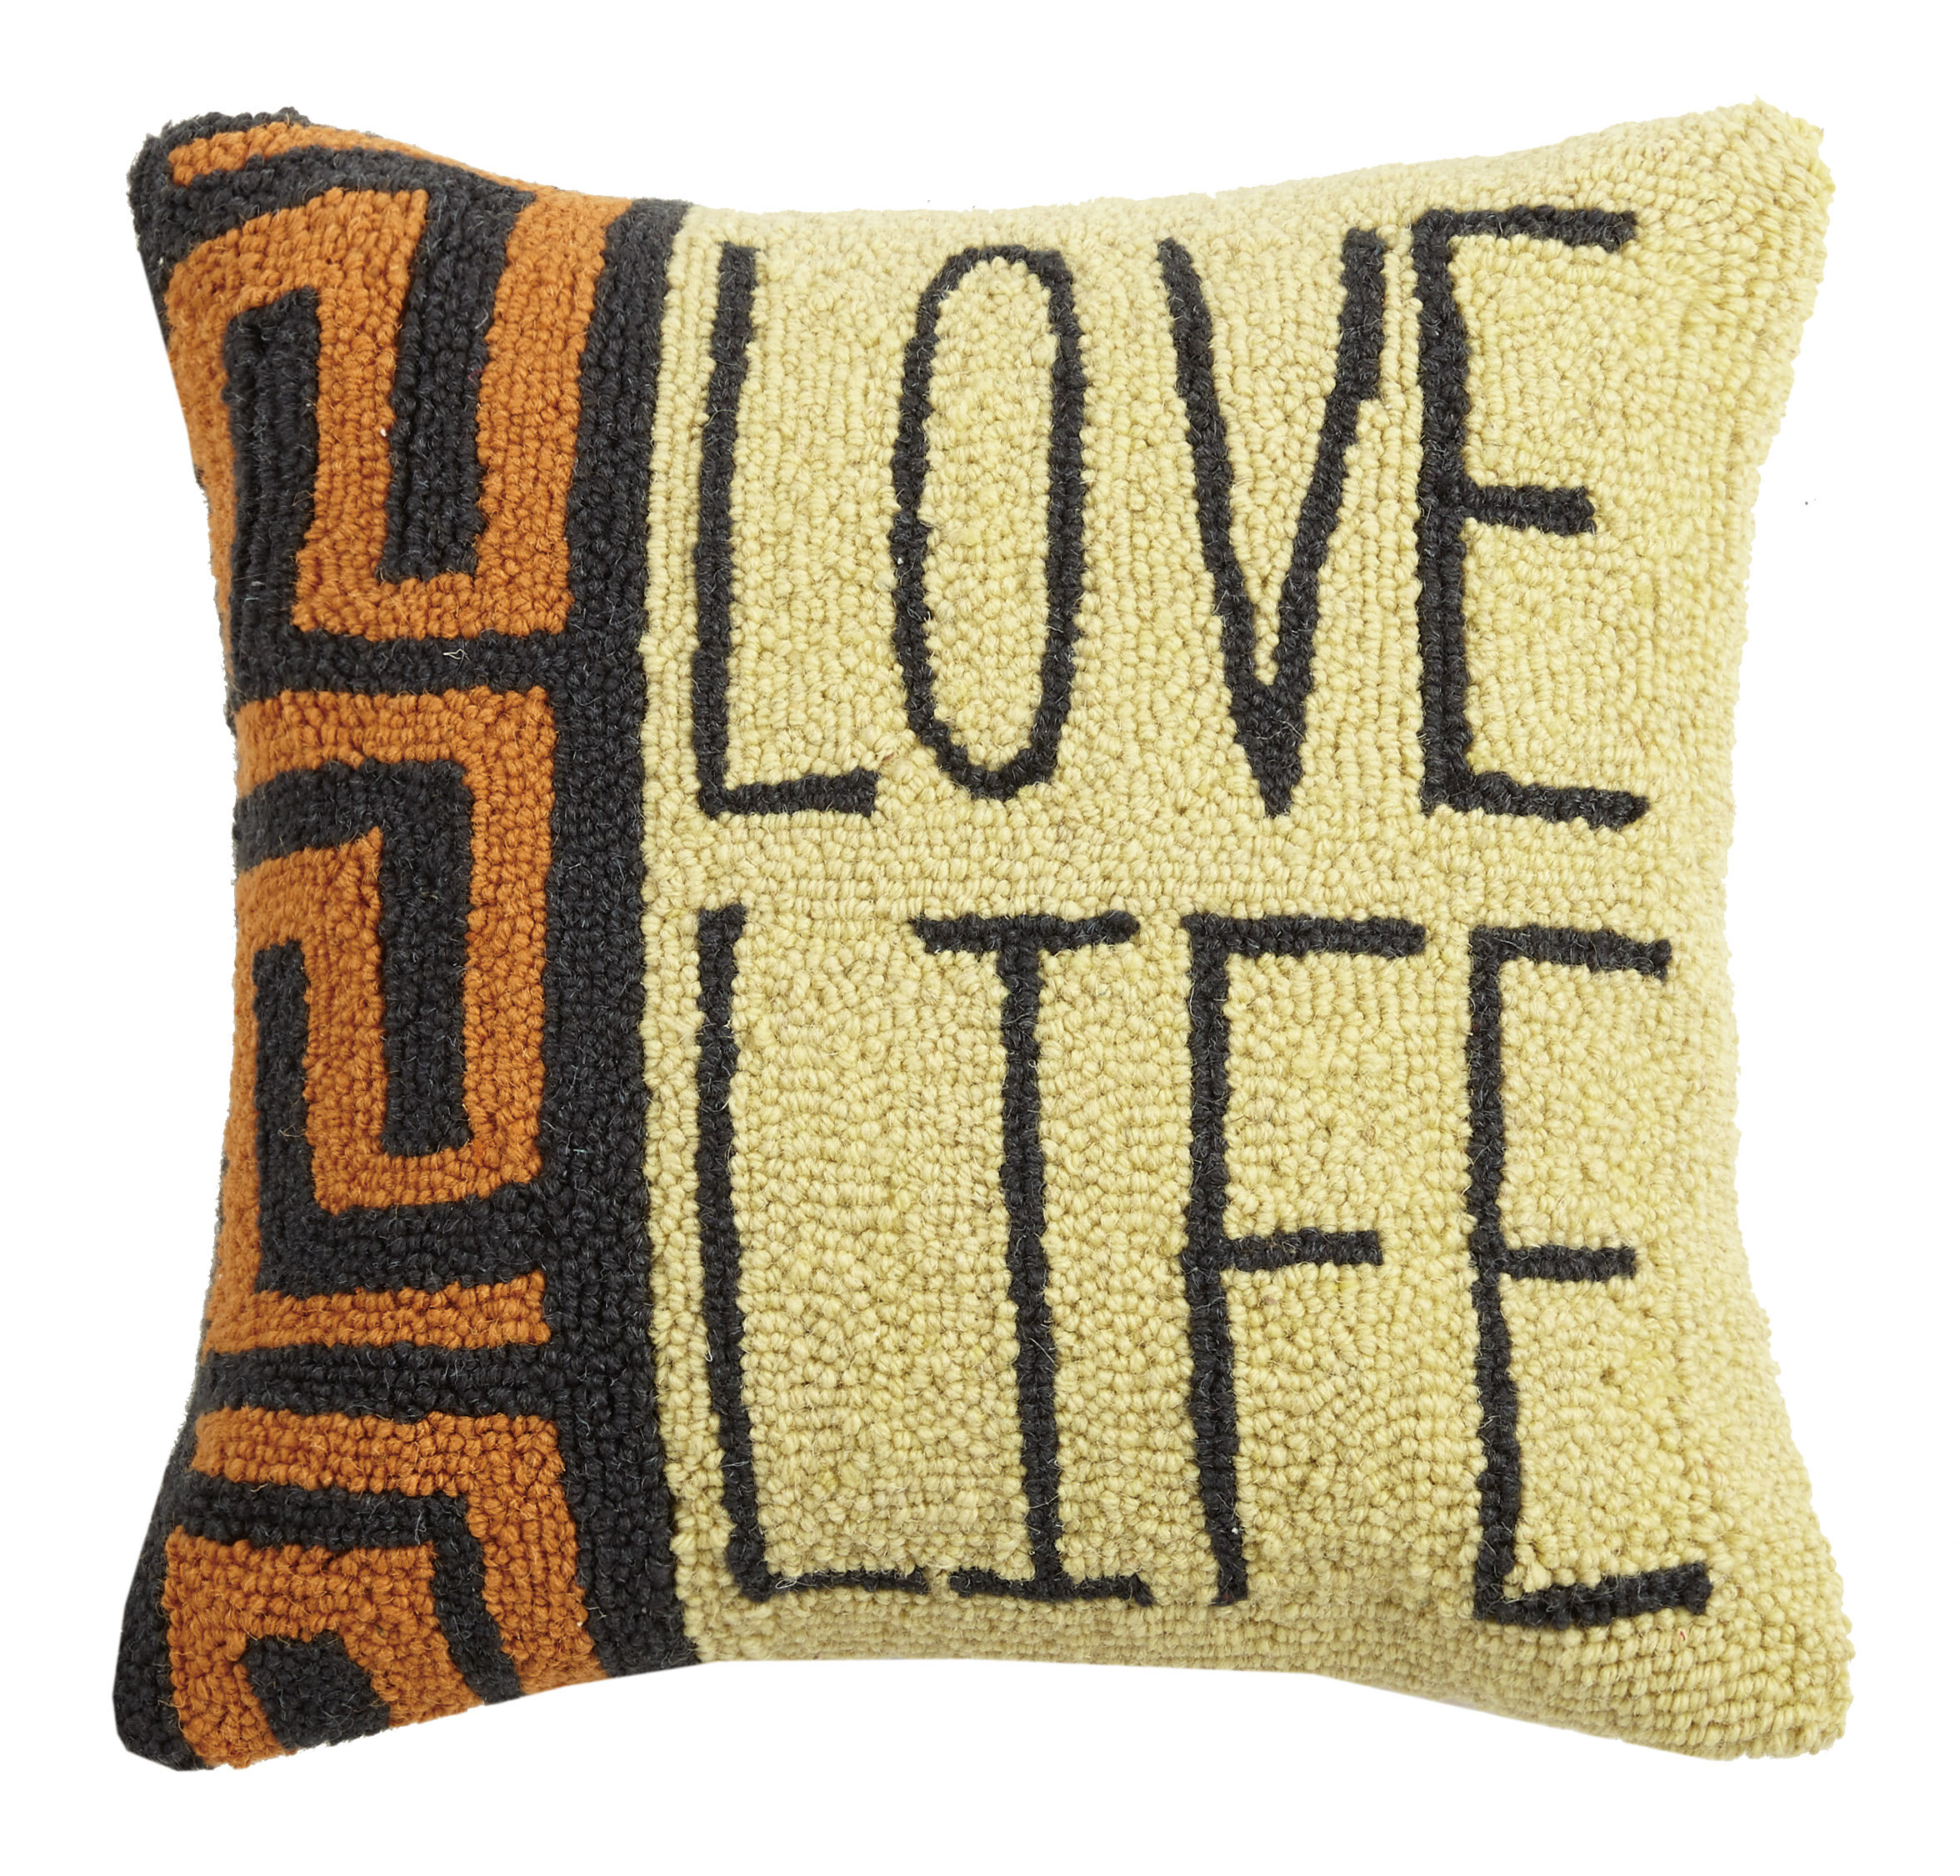 Large Throw Pillows You Ll Love In 2021 Wayfair